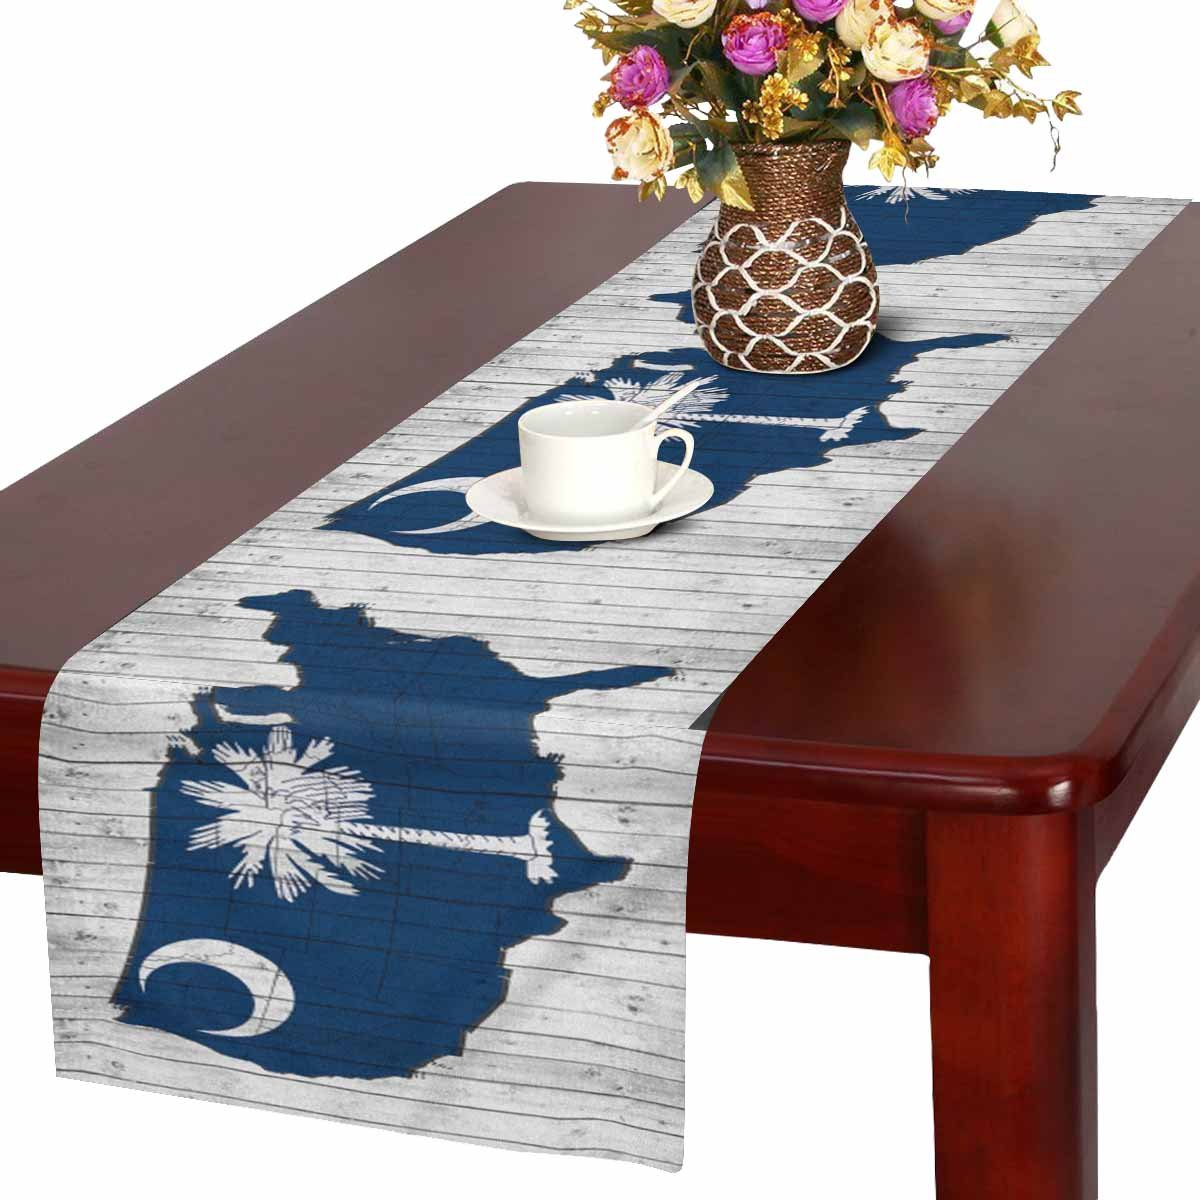 InterestPrint South Carolina Flag with America Map on Wood Background Table Runner Cotton Linen Cloth Placemat Home Decor for Home Kitchen Dining Wedding Party 16 x 72 Inches